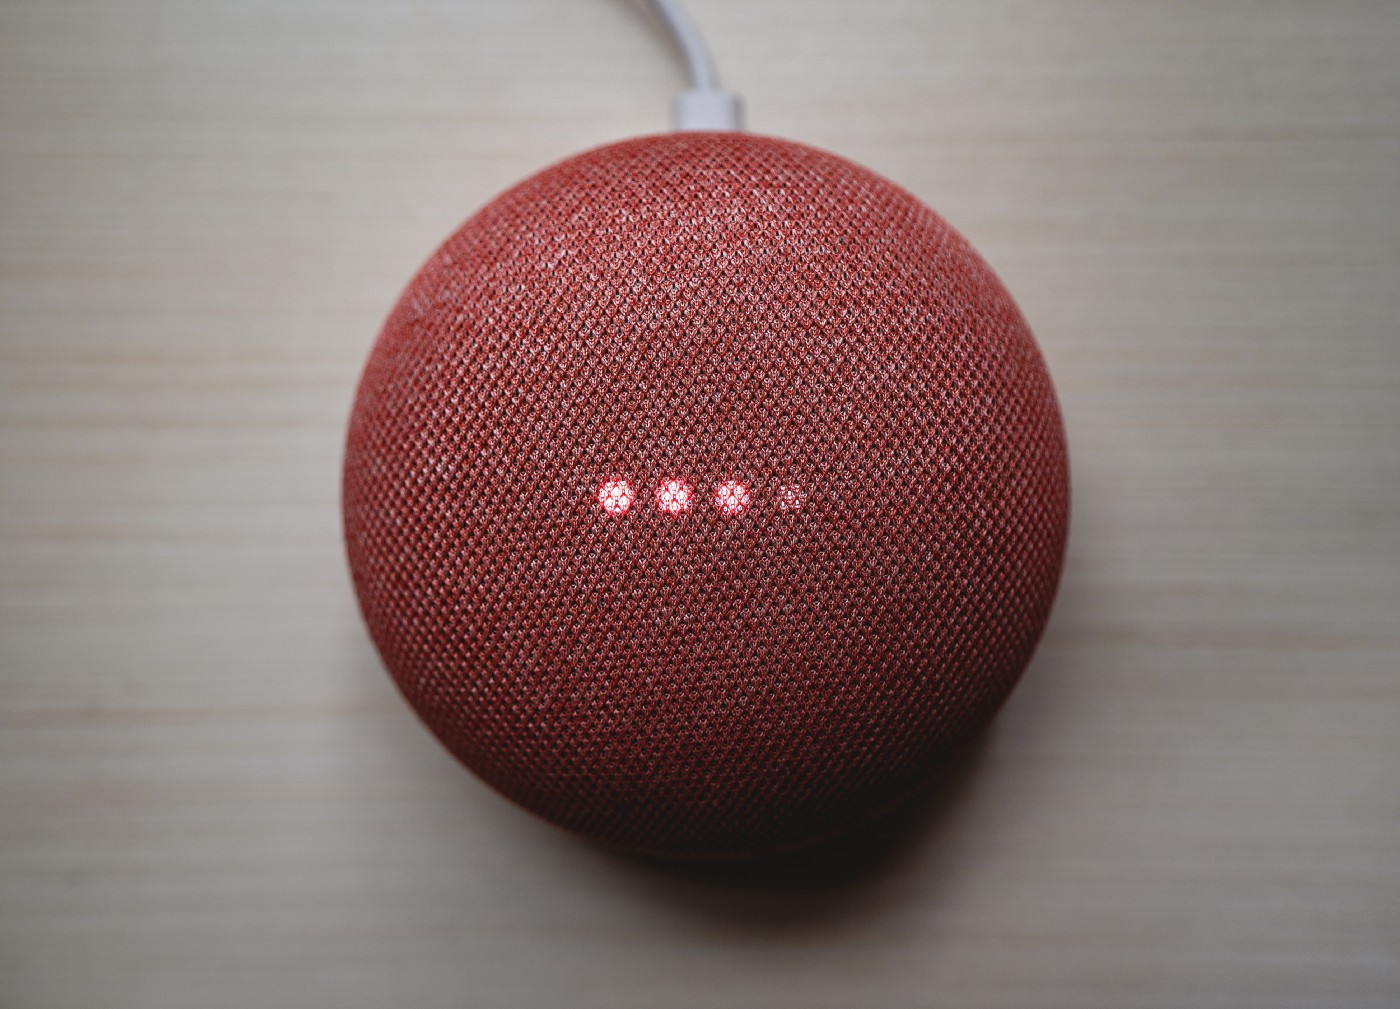 A red Google home device with LED lights turning on